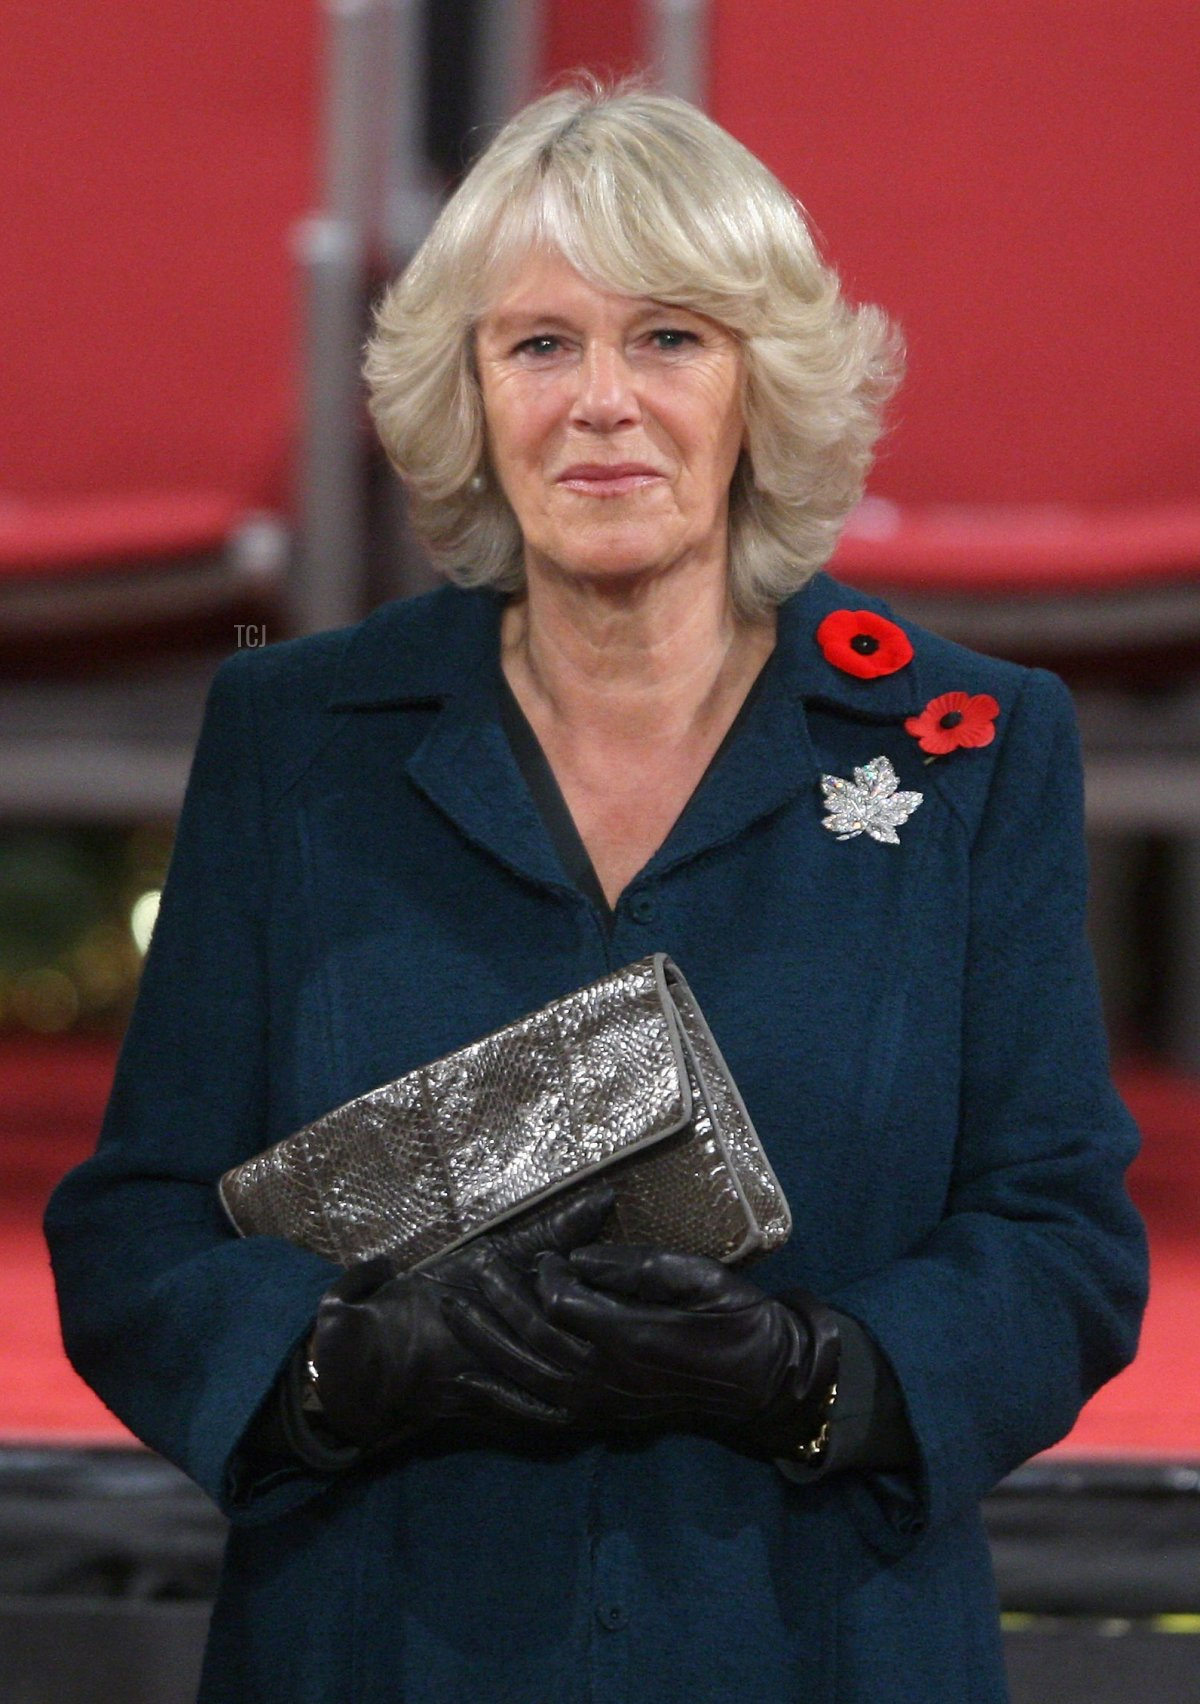 Camilla, Duchess of Cornwall stands next to Governor General Michaëlle Jean as they attend a welcome ceremony at the Mile One Centre on November 2, 2009 in Saint John's, Canada